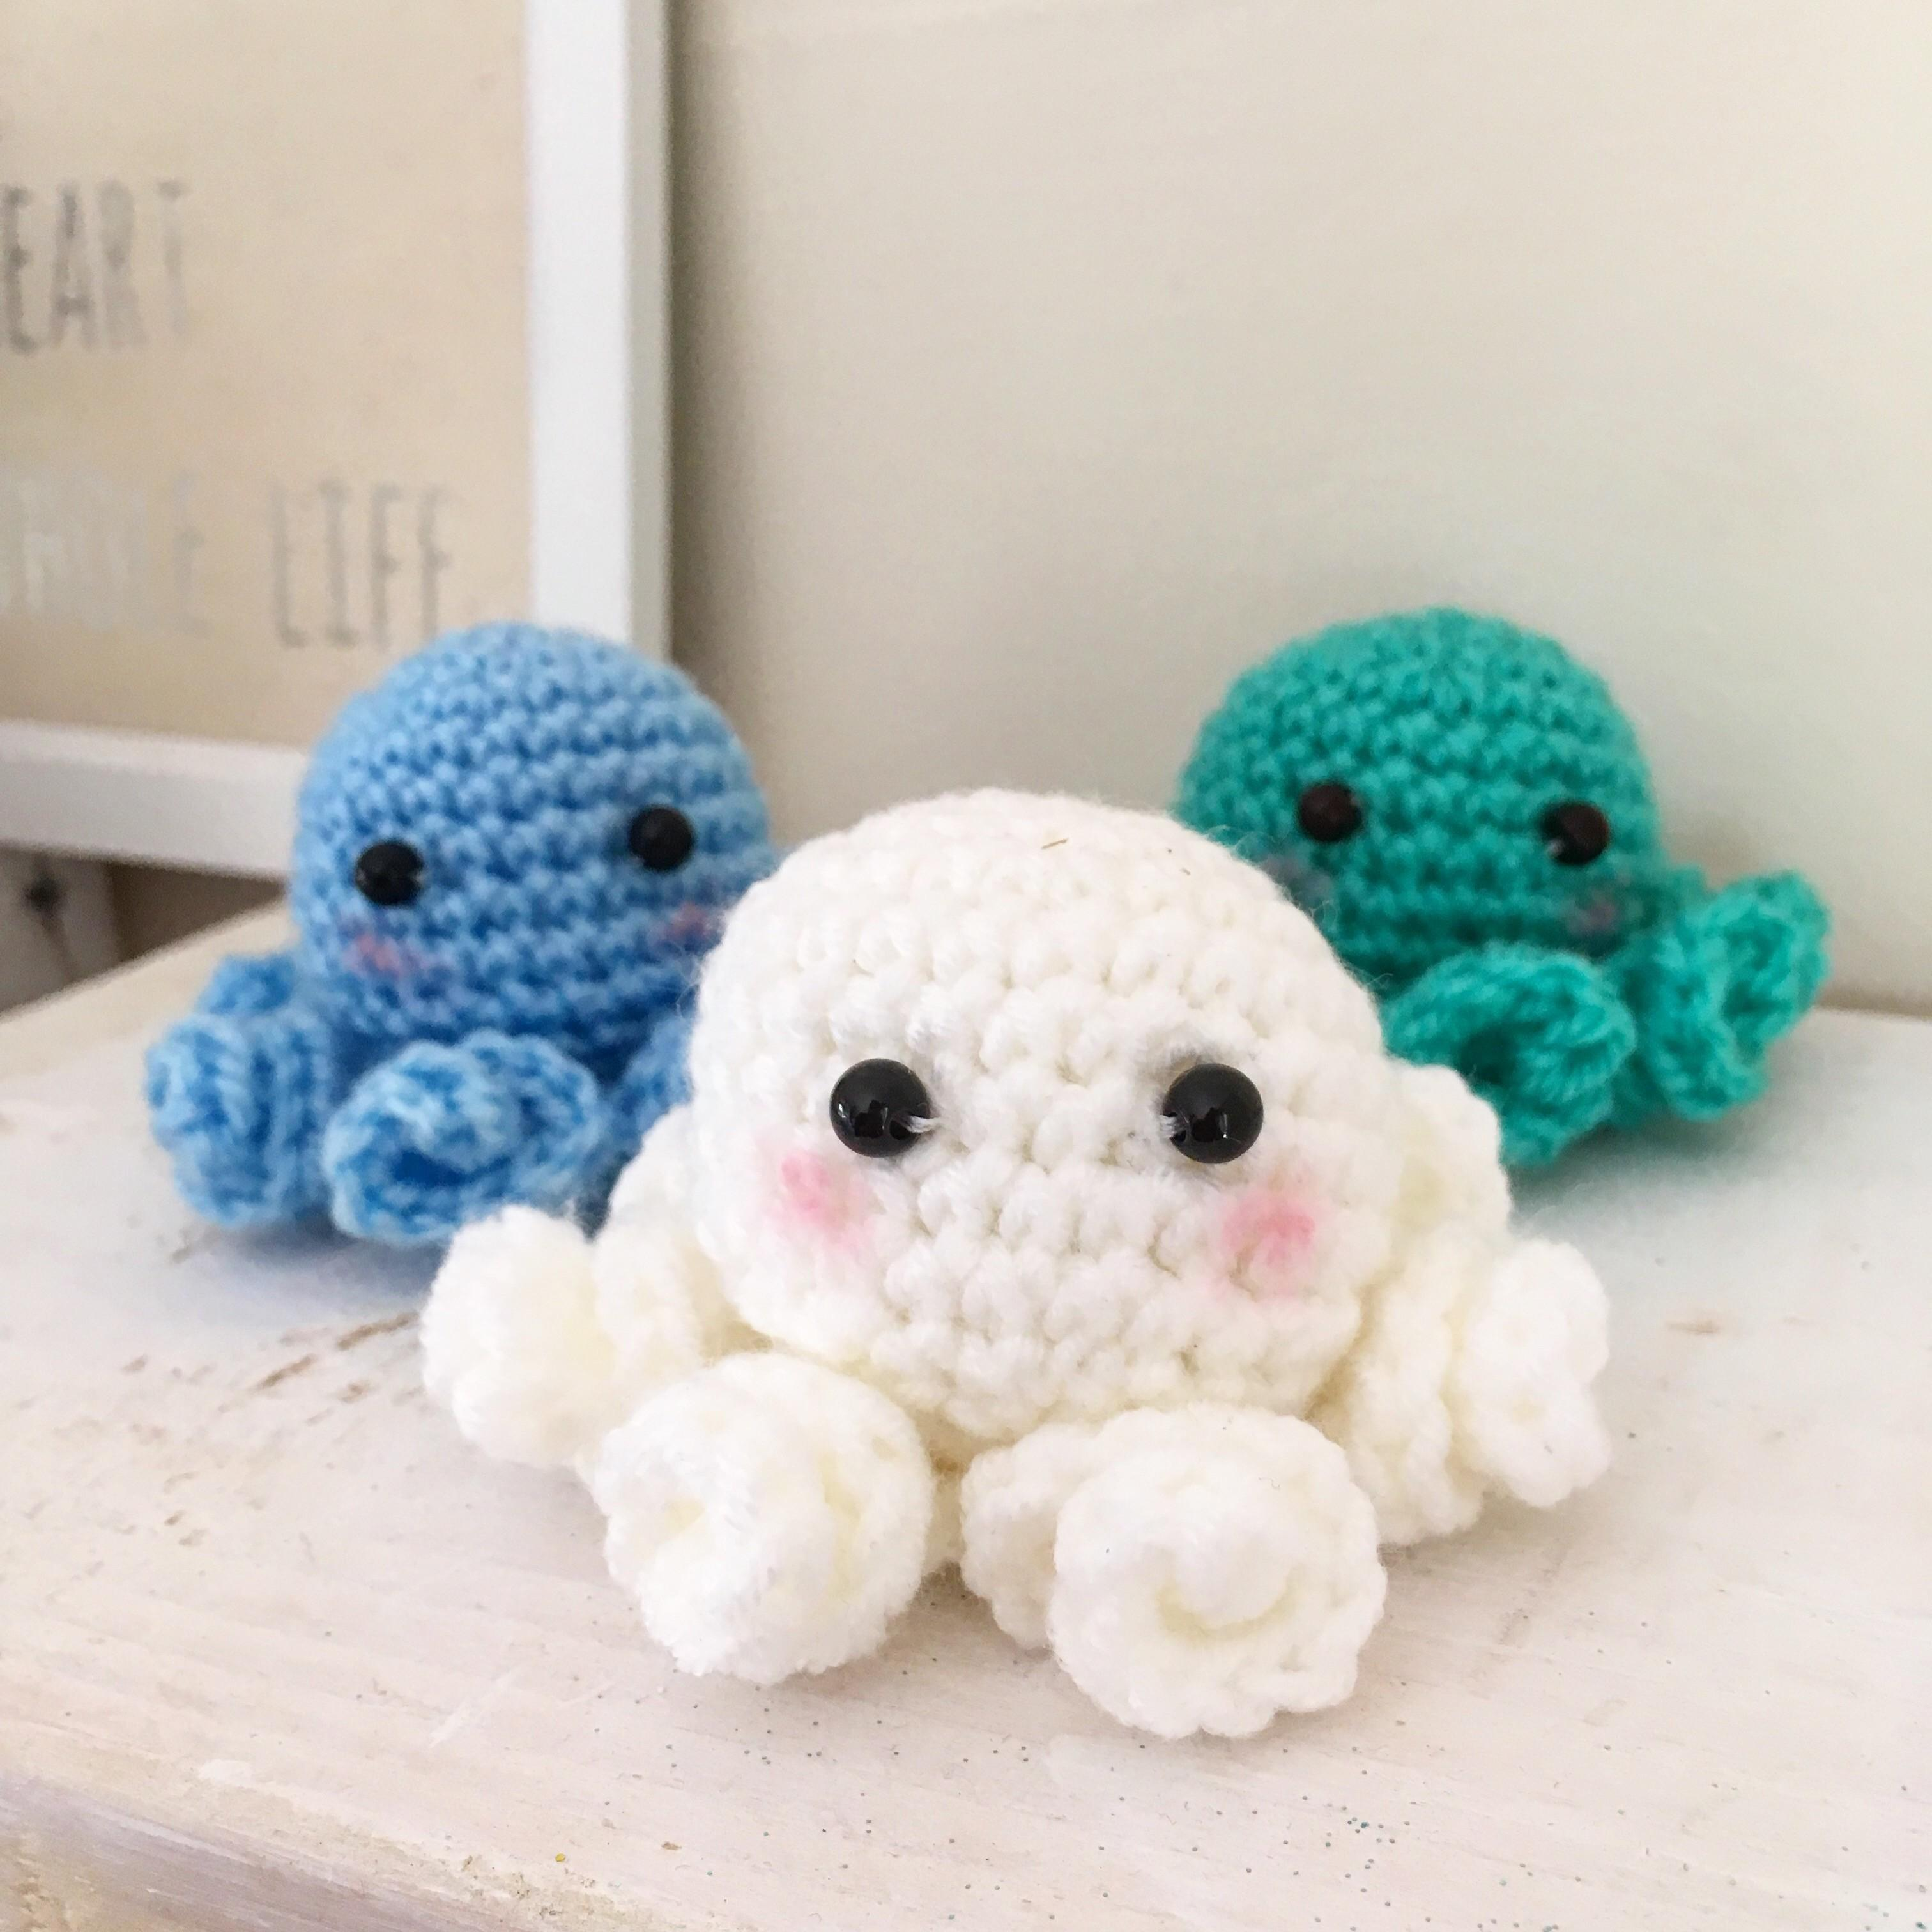 Diy Amigurumi Crochet Octopus Pattern Crafty Mummy